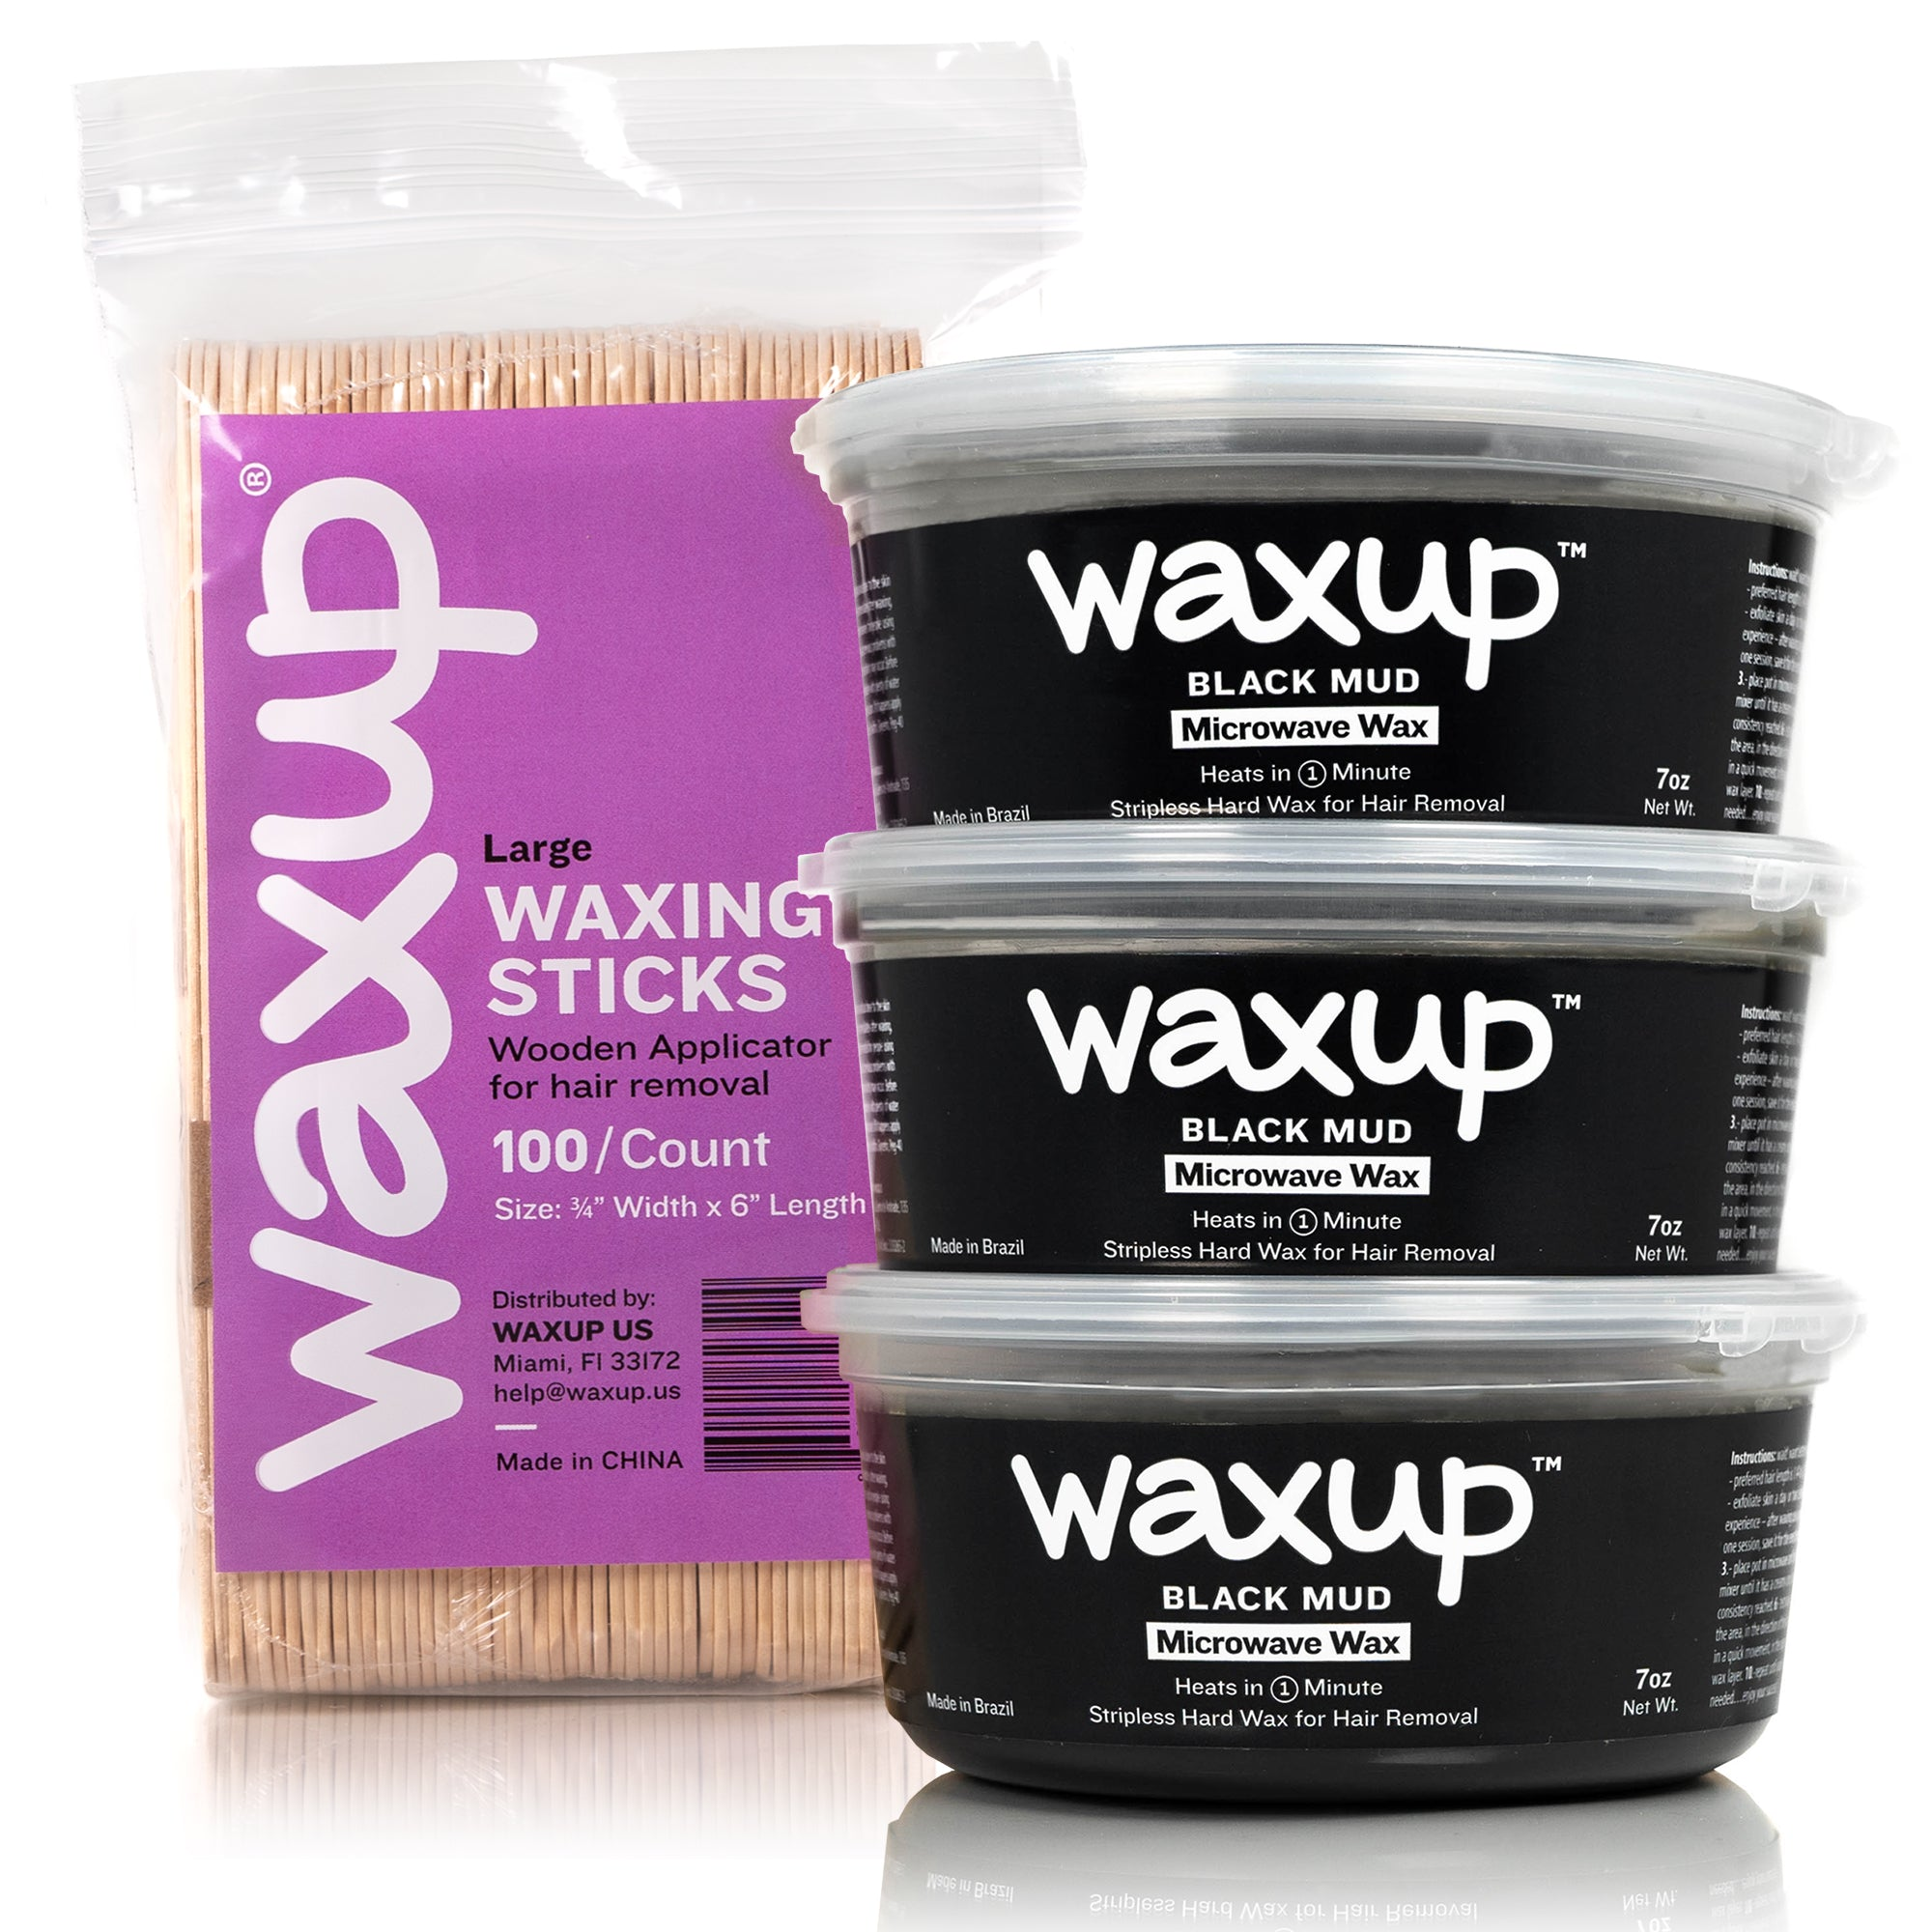 microwave wax hair removal for women, microwave wax kit, microwaveable wax, hard wax, stripless wax, bikini waxing, brazilian waxing black wax, nose wax kit, depilatory wax for men